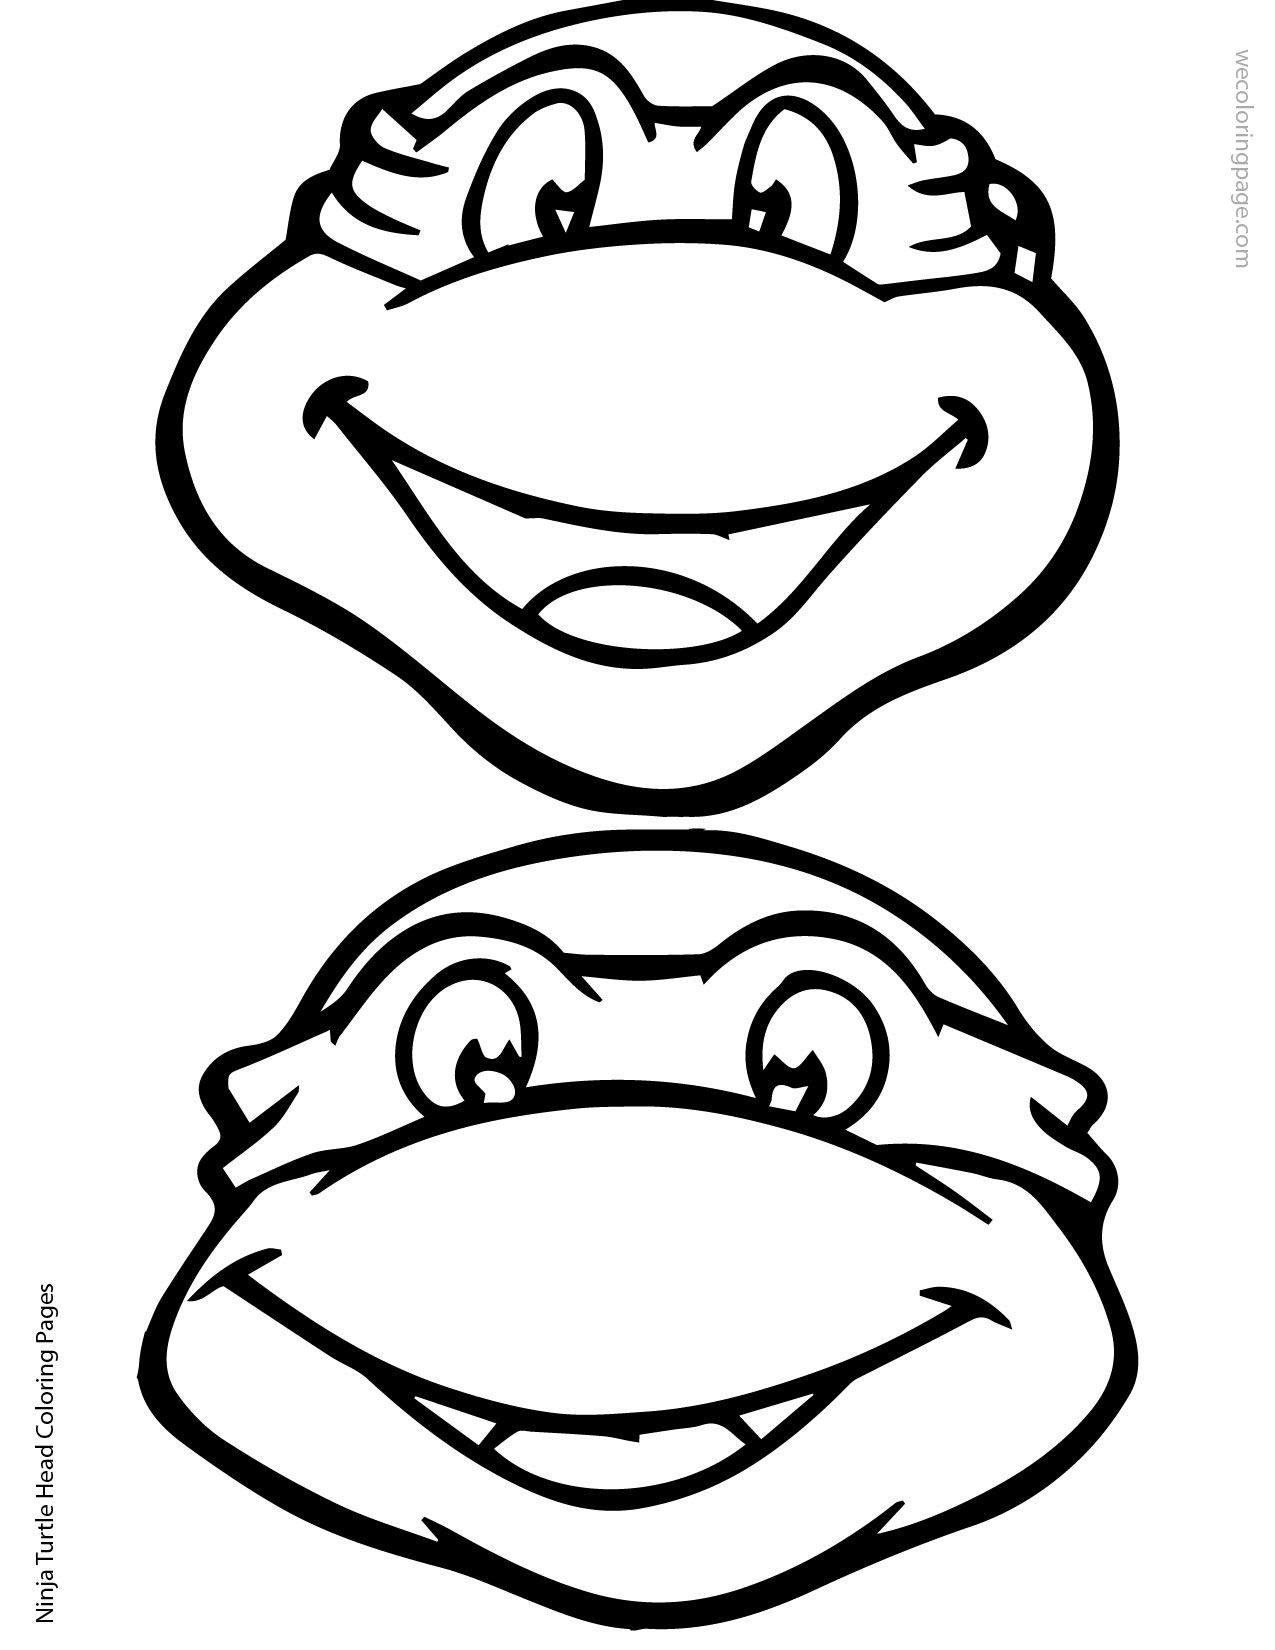 Ninja Turtle Head Coloring Page 02 01